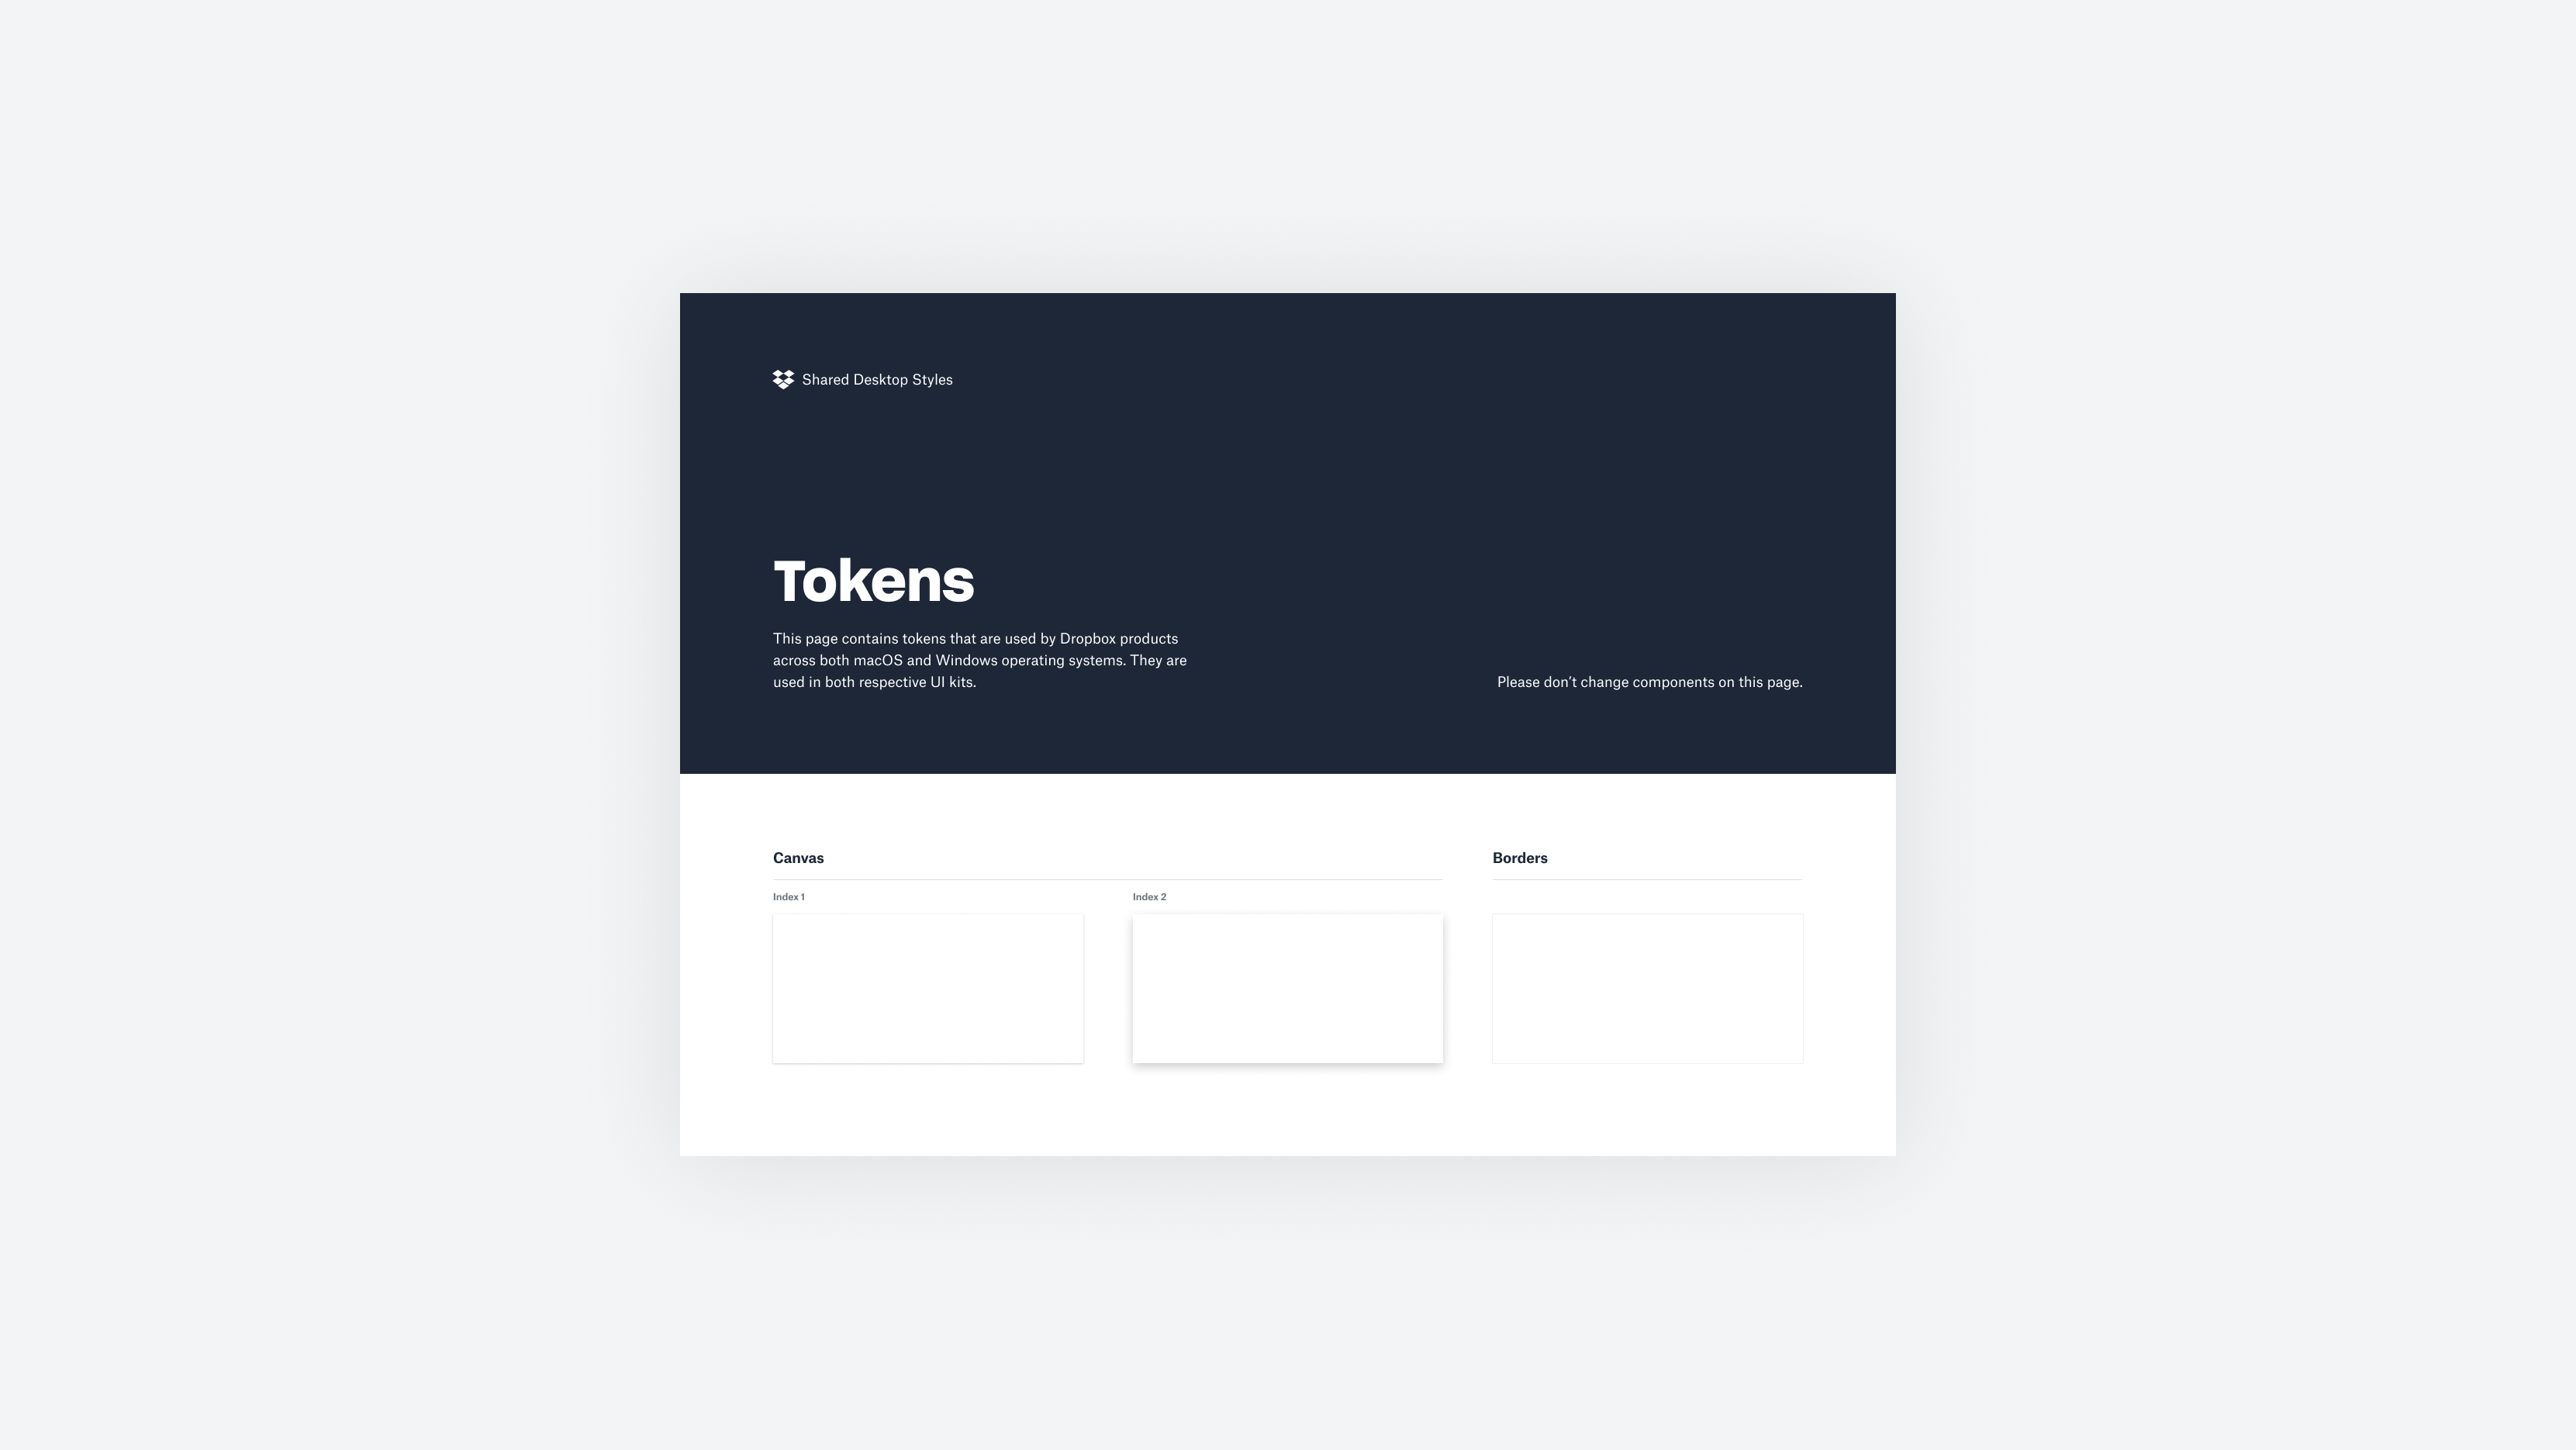 Tokens from Shared Desktop Styles.